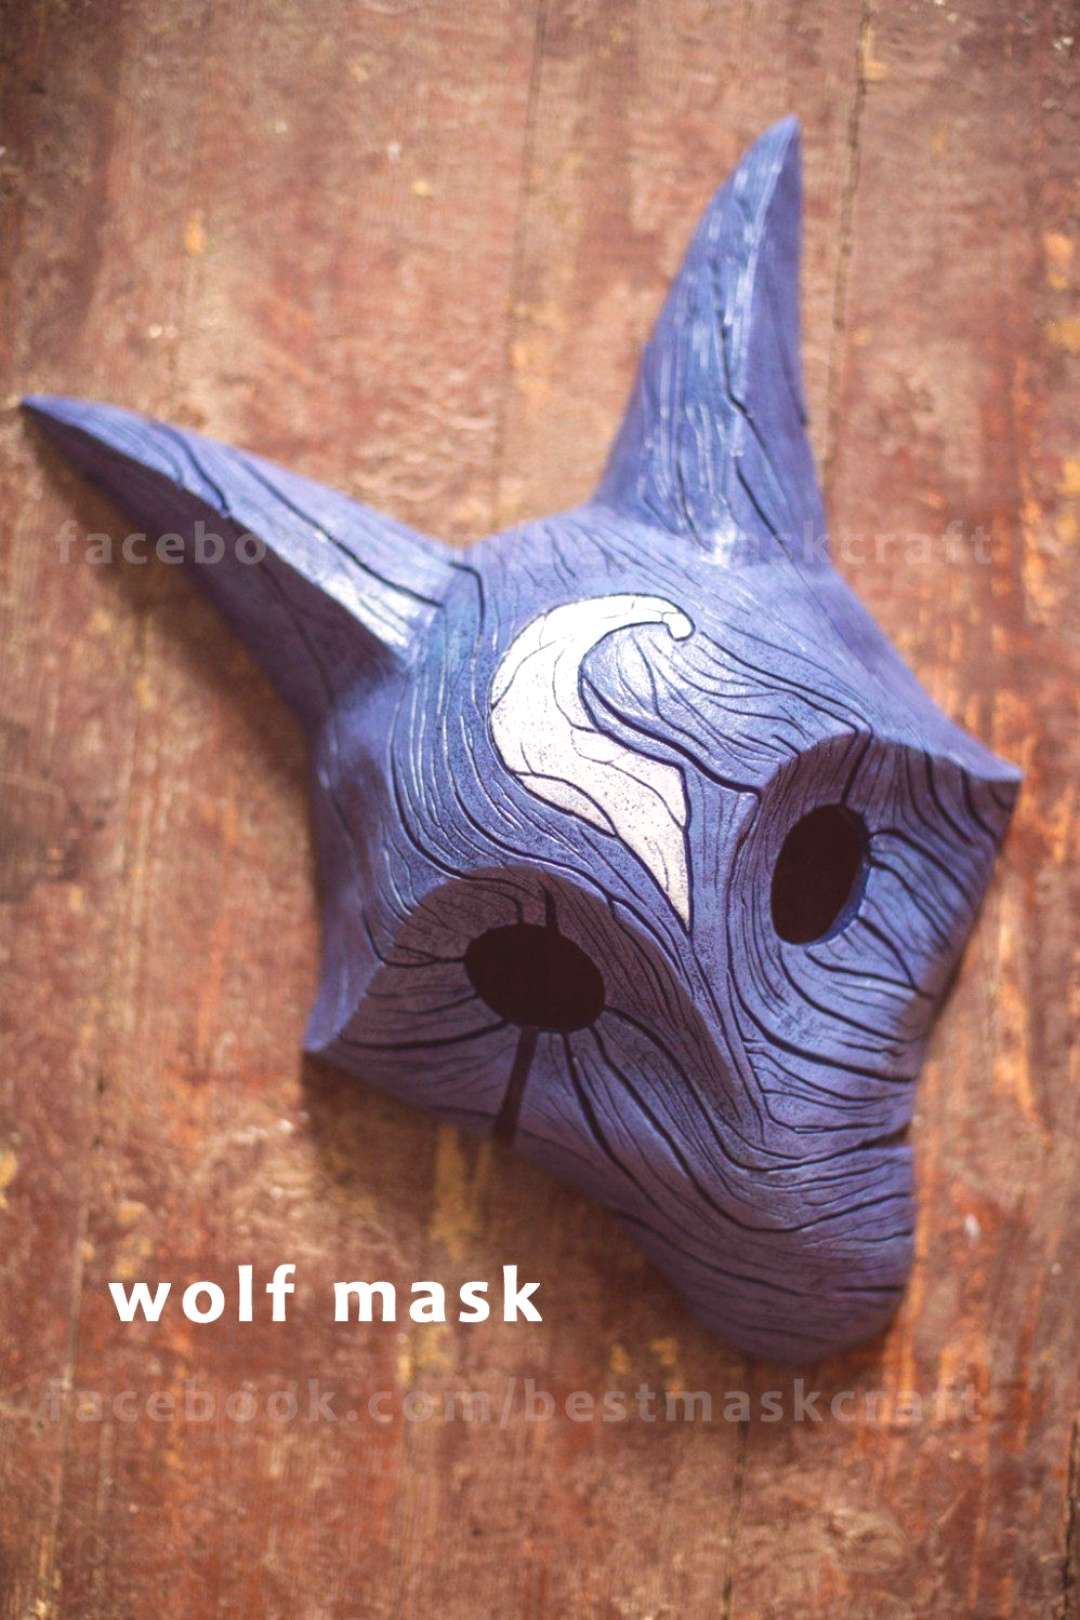 inspirierte Kindred Wolf Mask League of Legends Lol Cosplay#cosplay